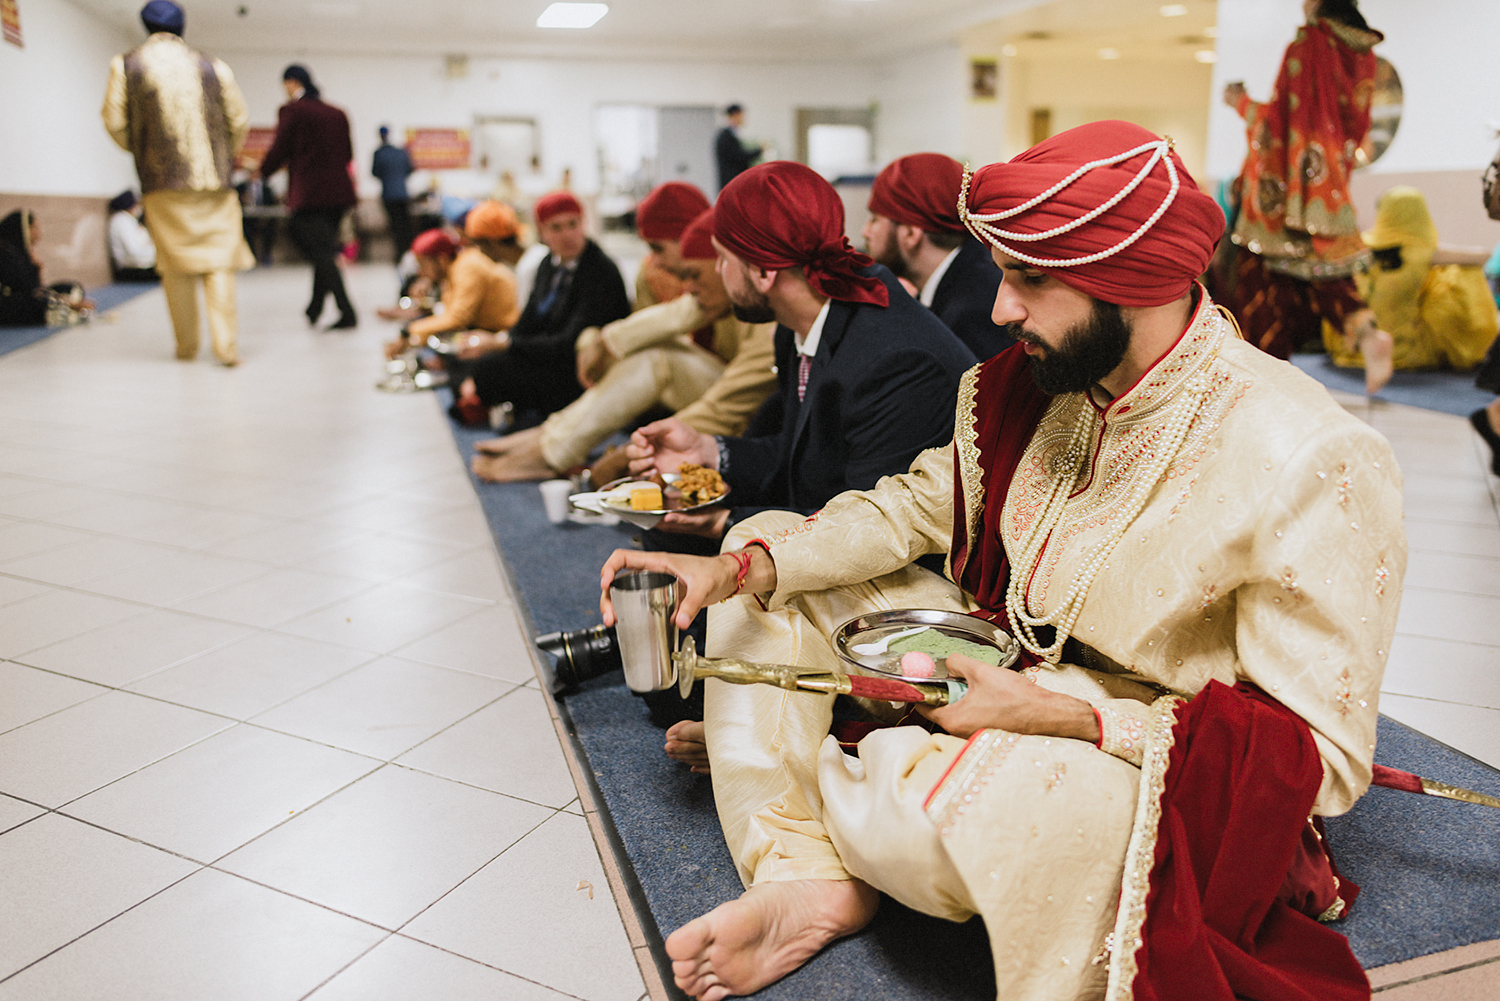 Toronto-Photojournalism-wedding-photographers-3B-Photography-Candid-Documentary-Film-Photography-Analog-Ontario-Hamilton-Port-Perry-Venue-temple-ceremony-sikh-pre-ceremony-traditions-meal-moments-groom-eating.jpg